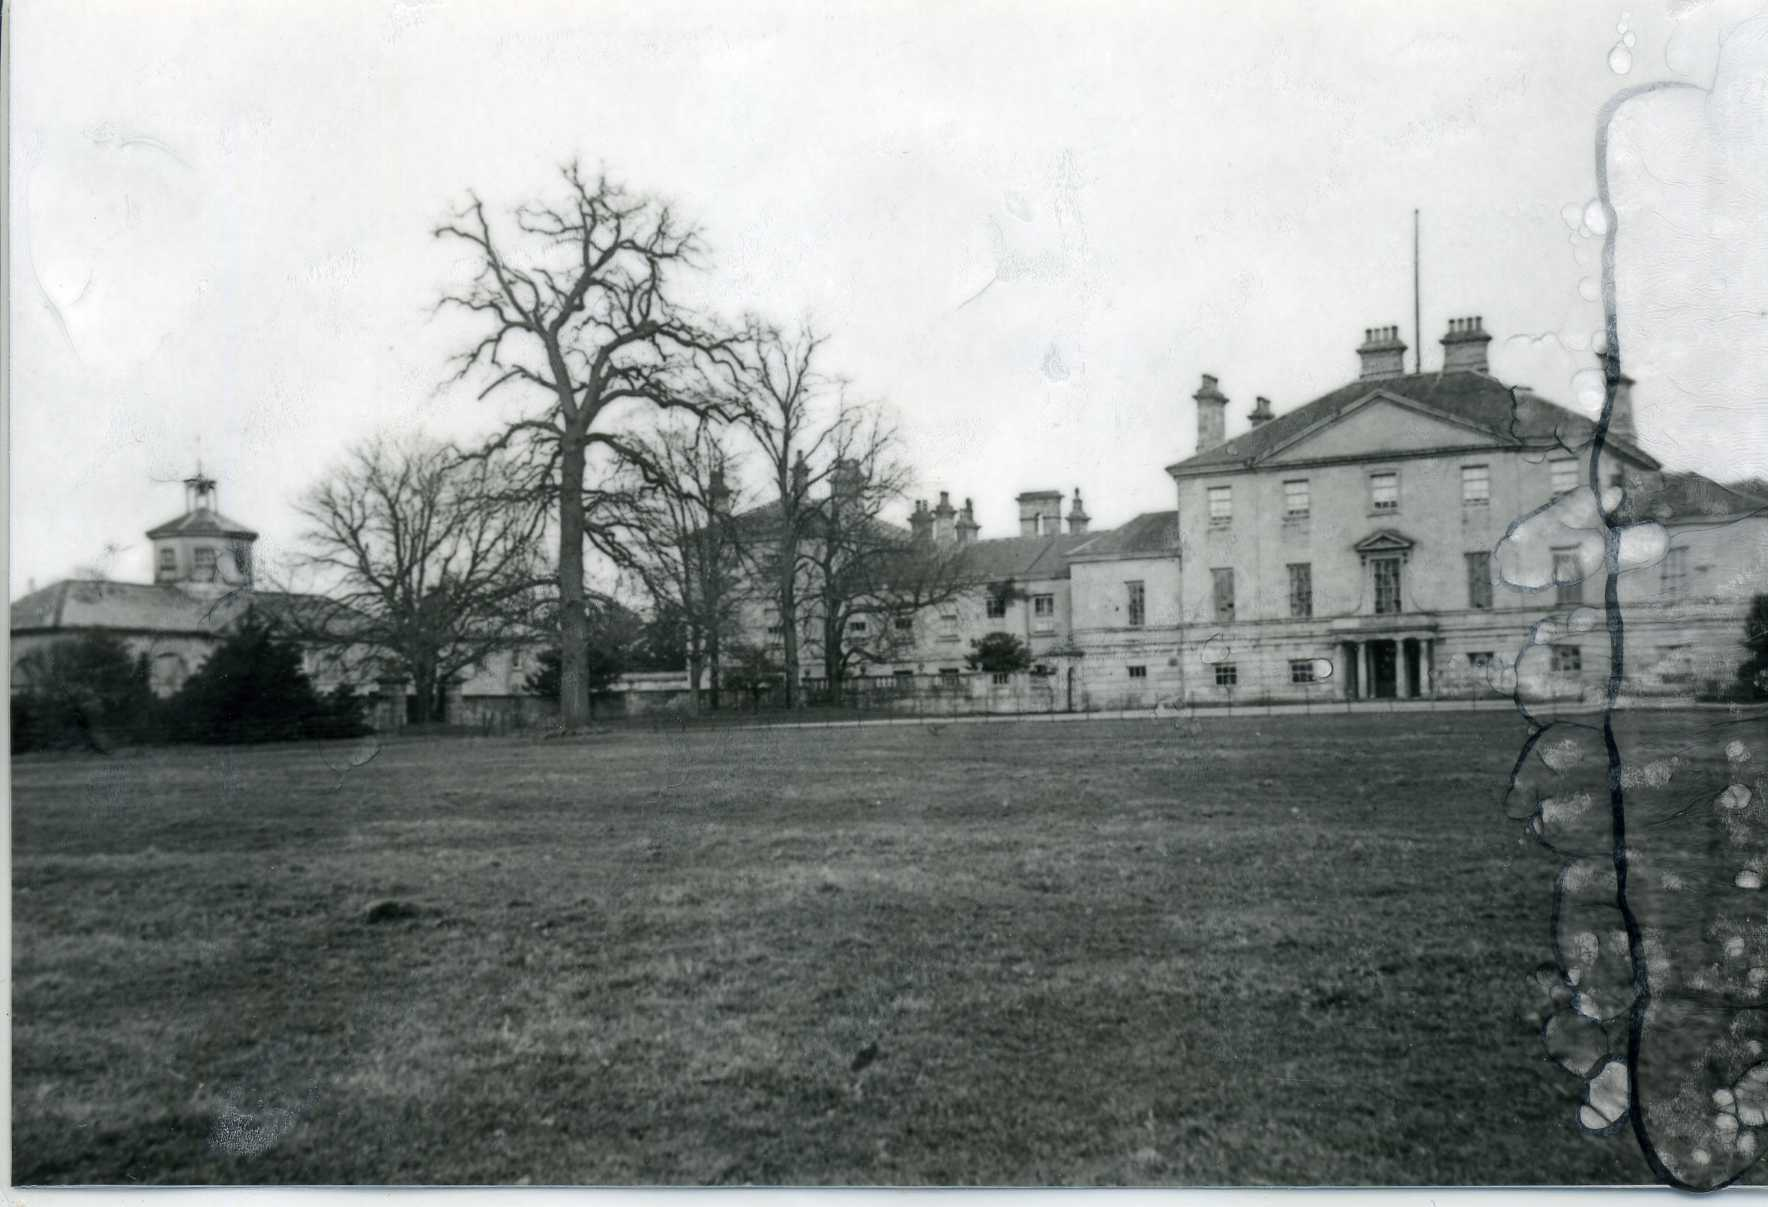 Brocklesby House